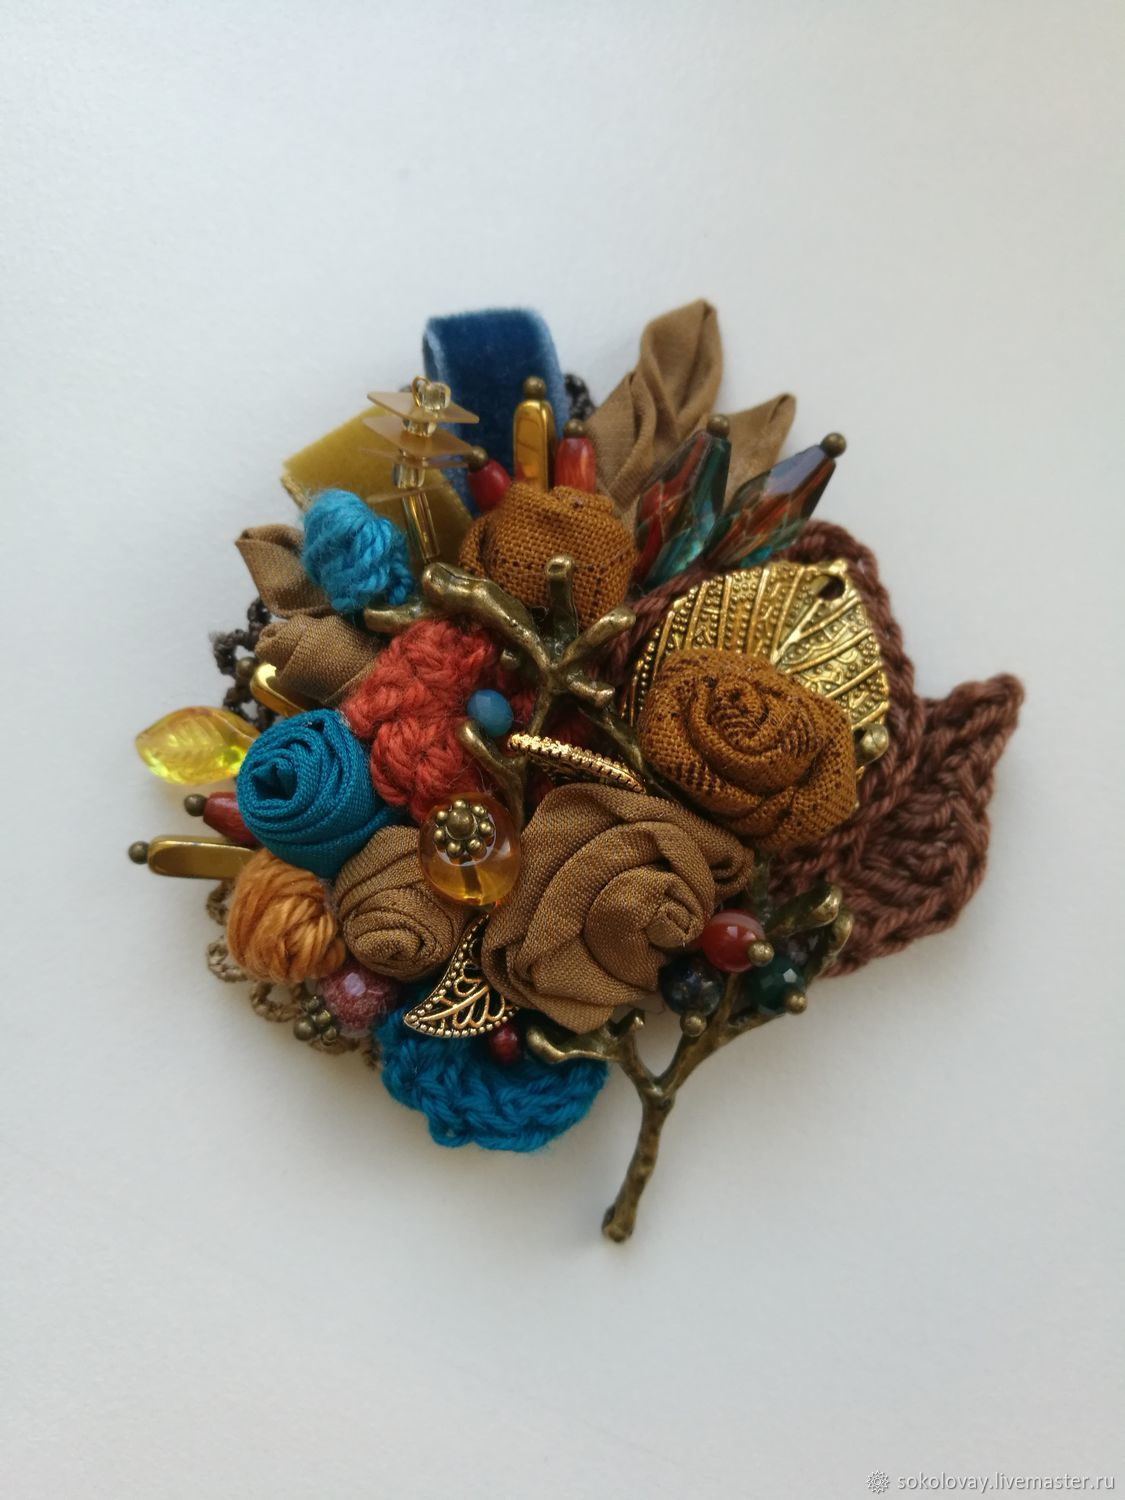 Copy of Brooch textile 'Vanilla sky', Brooches, Moscow,  Фото №1